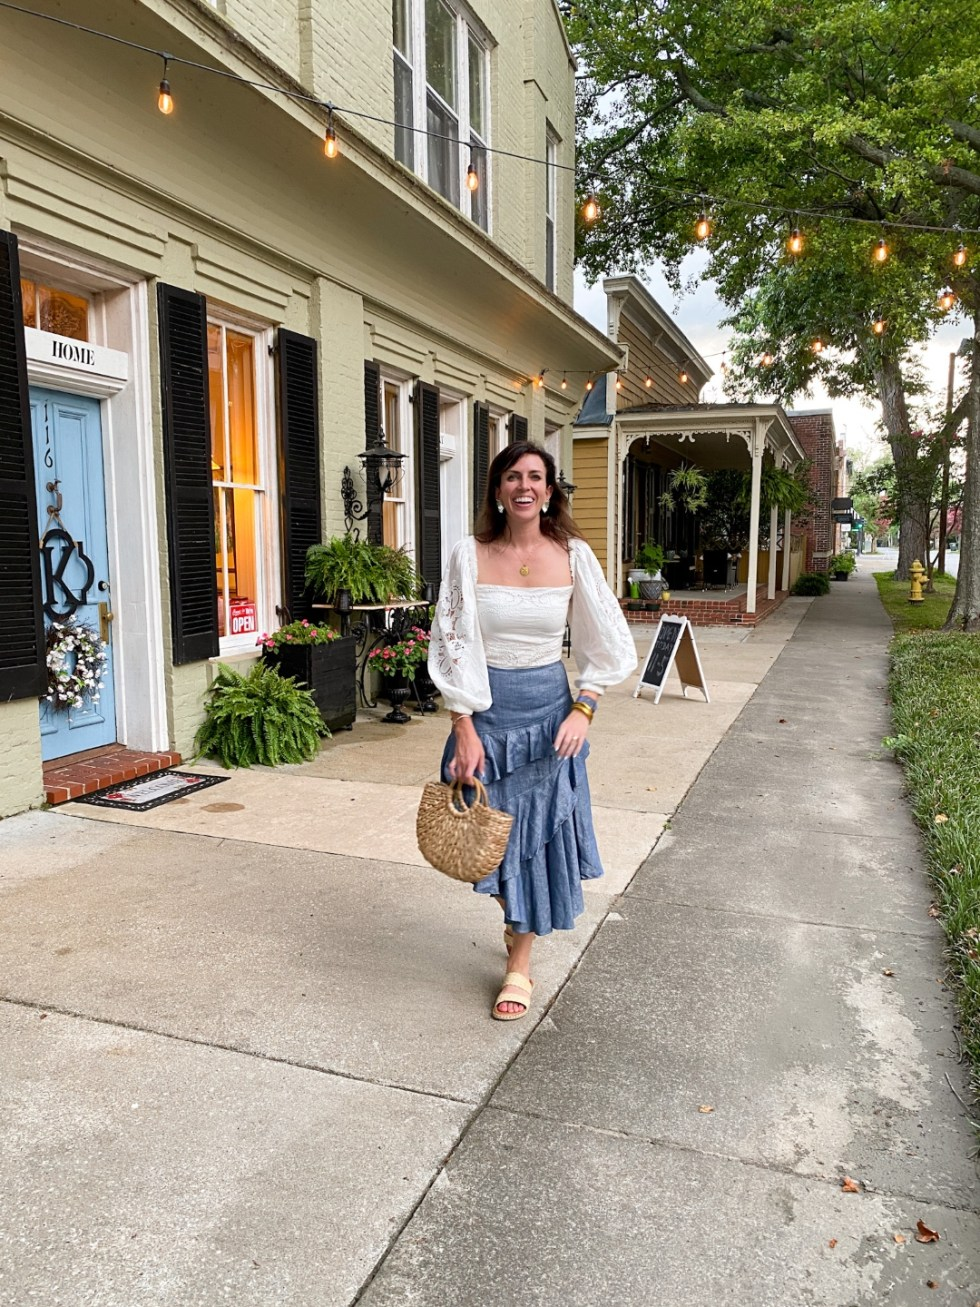 Top 10 Best Things to Do in Edenton, NC: A Complete Travel Guide - I'm Fixin' To - @imfixintoblog | Edenton Travel Guide by popular NC travel guid, I'm Fixin' To: image of a woman standing in front of a cream brick building with black shutters and a light blue door.